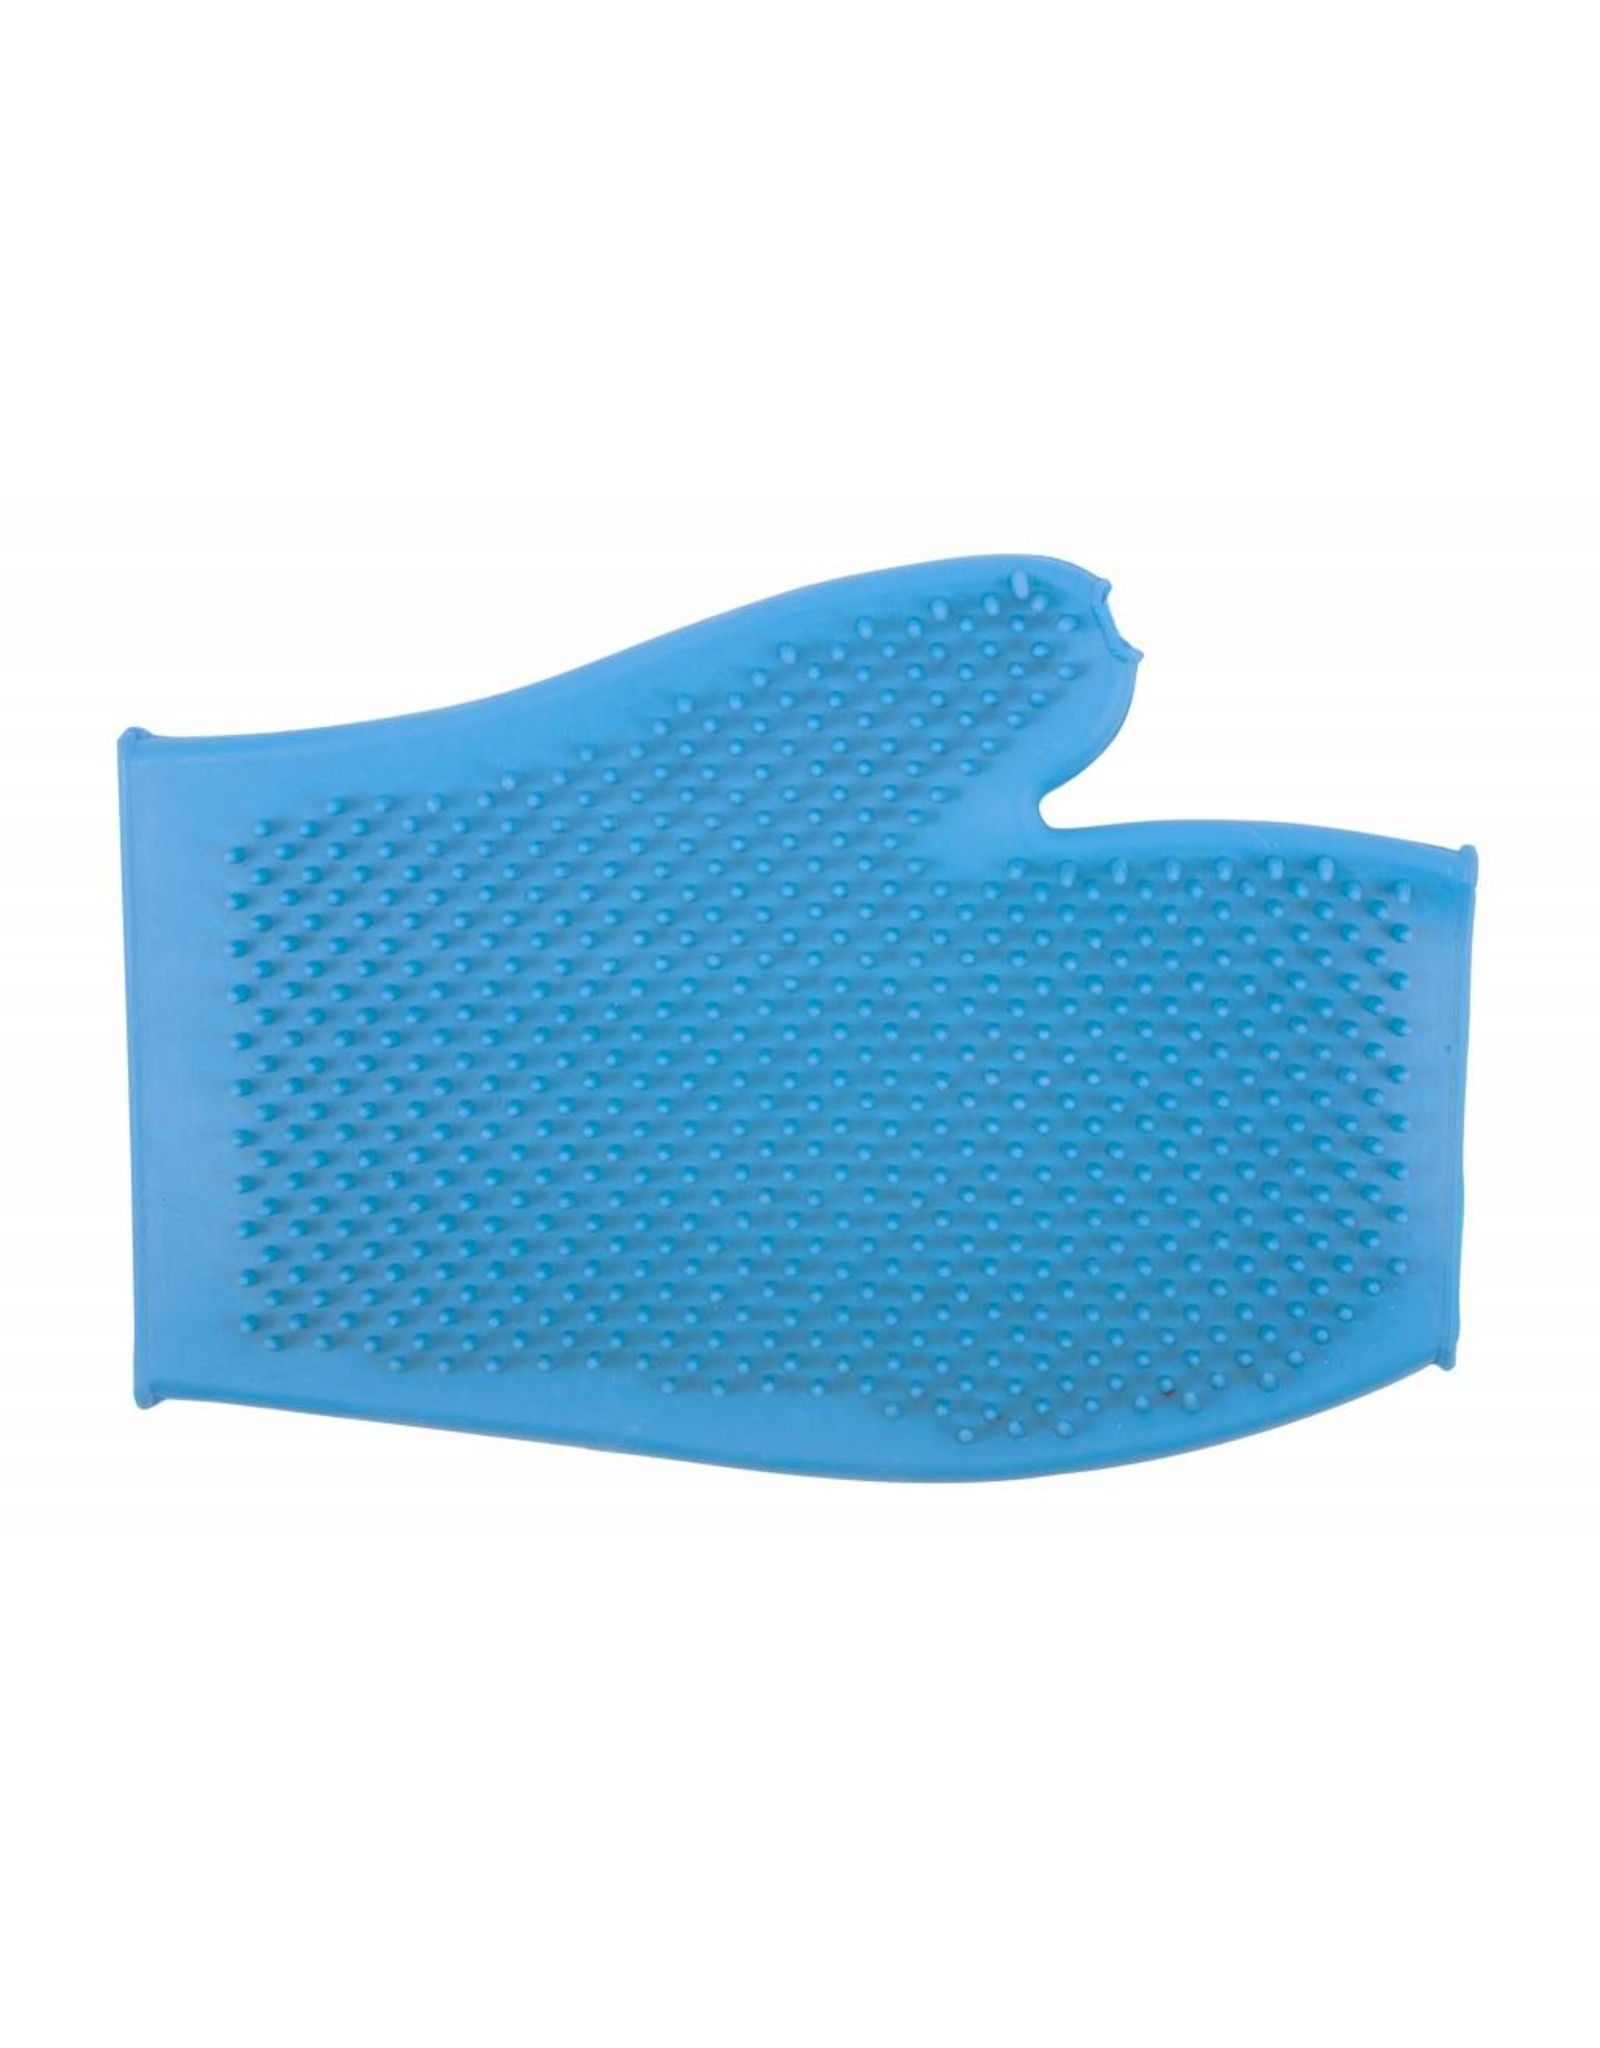 Ancol Ergo Rubber Grooming Glove